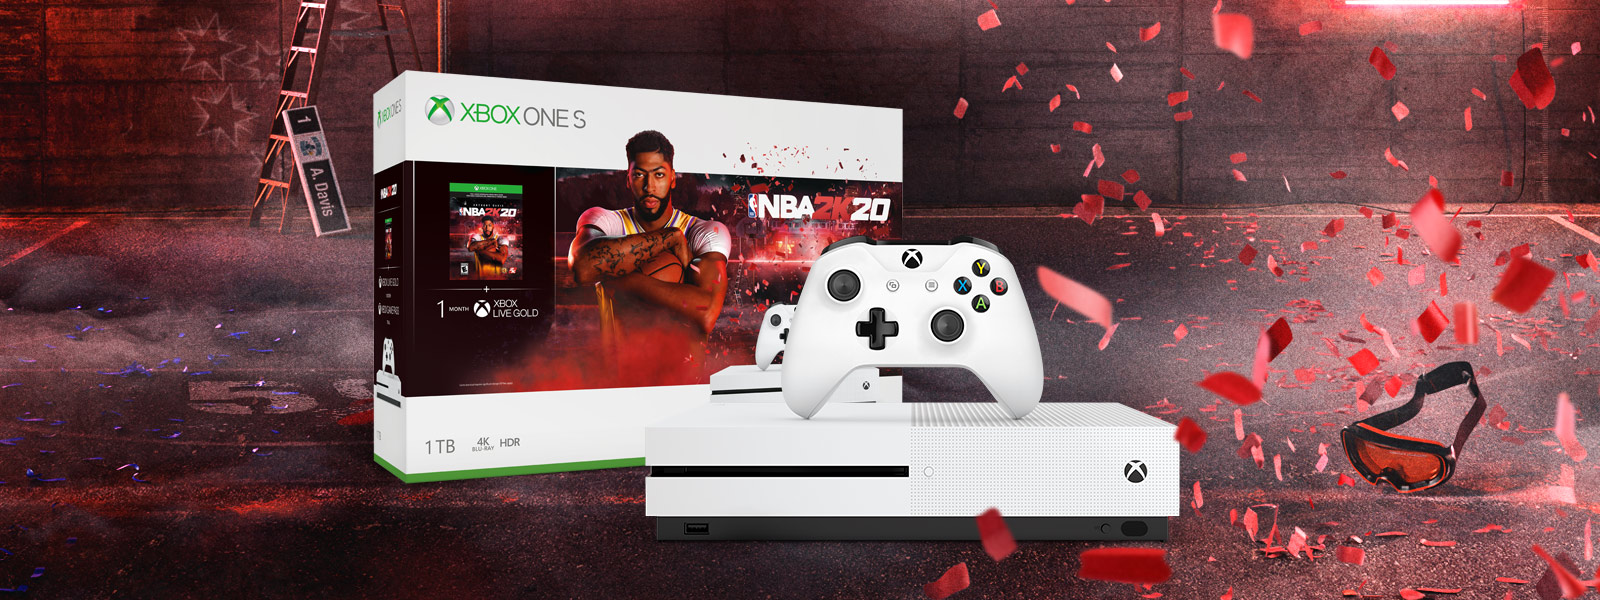 Xbox One S NBA 2K20 bundle art in front of mountains and a road with leaves